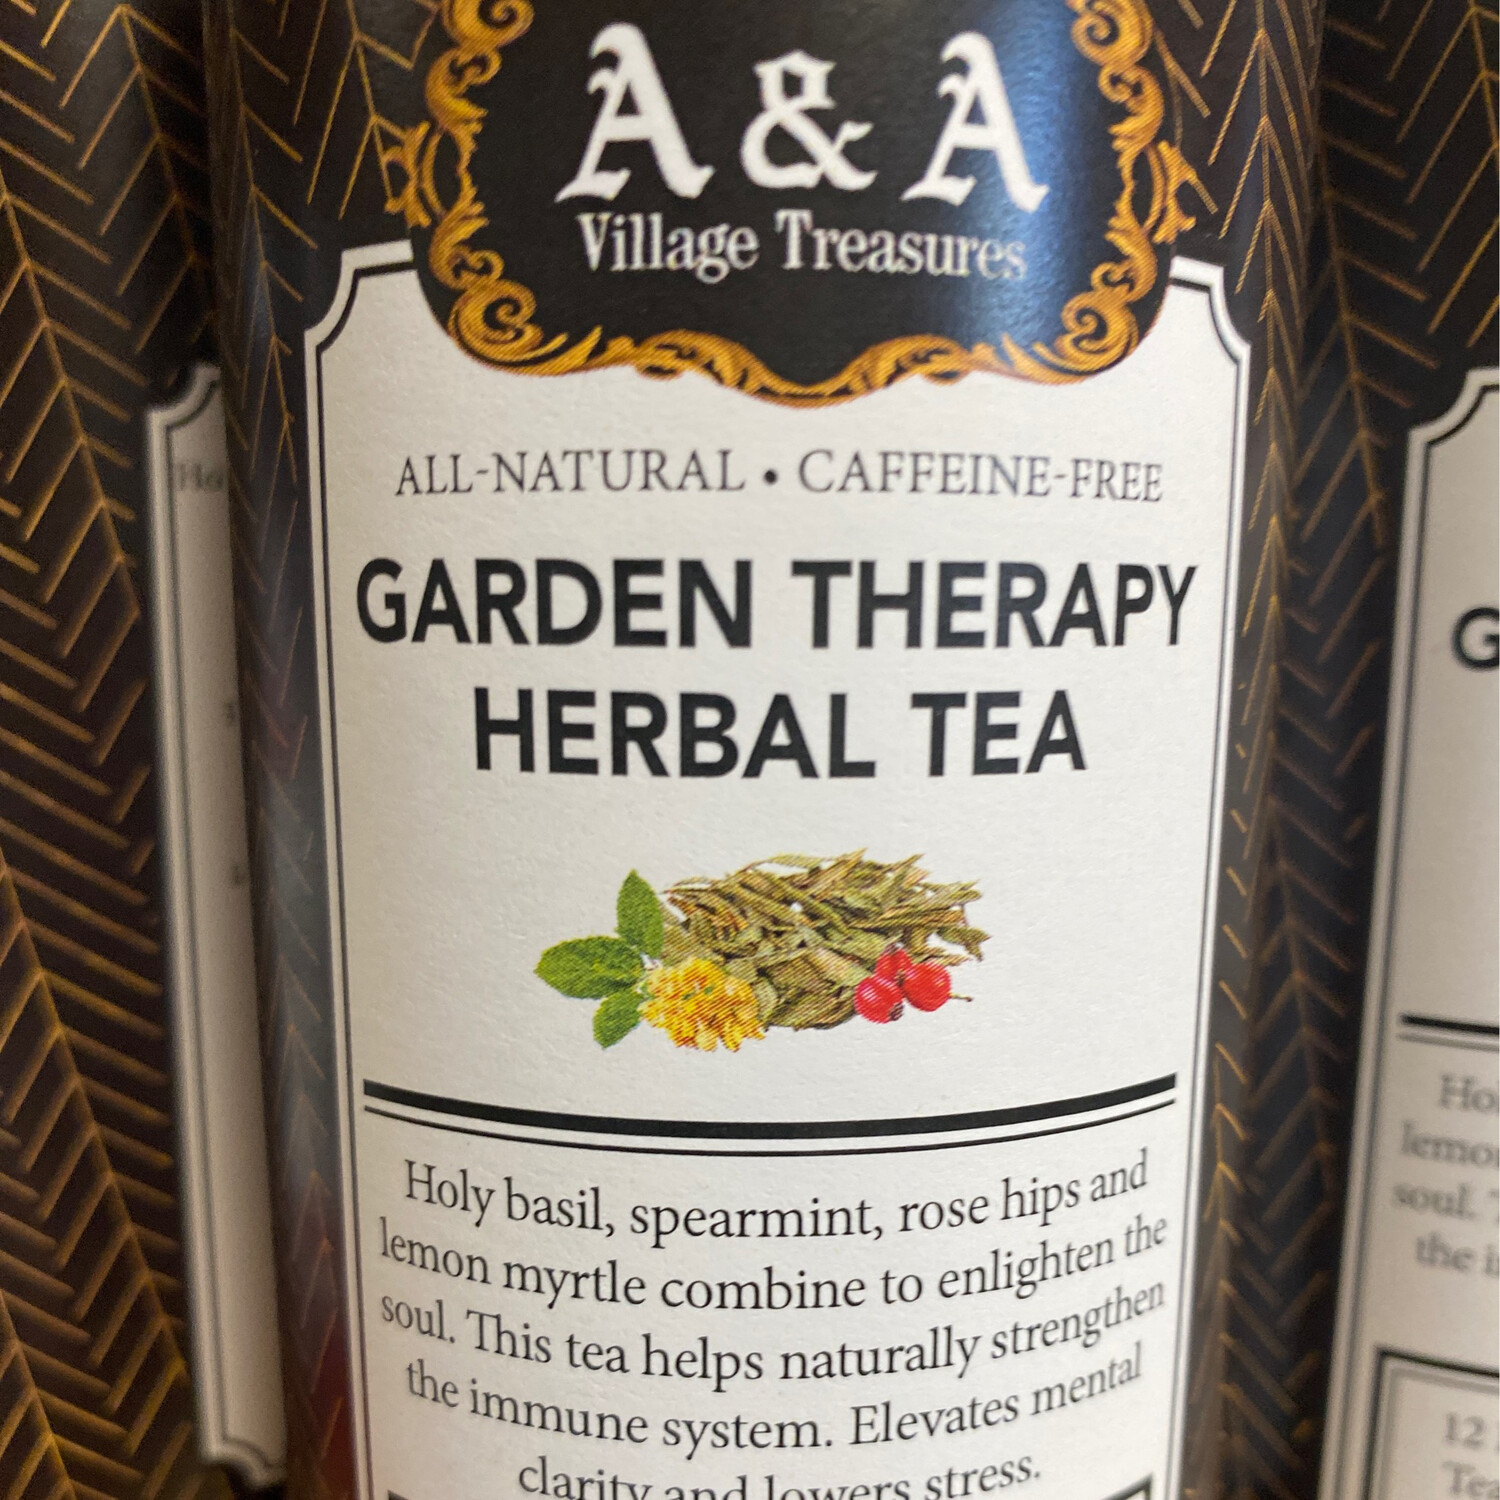 AA Signature Garden Therapy Herbal Tea